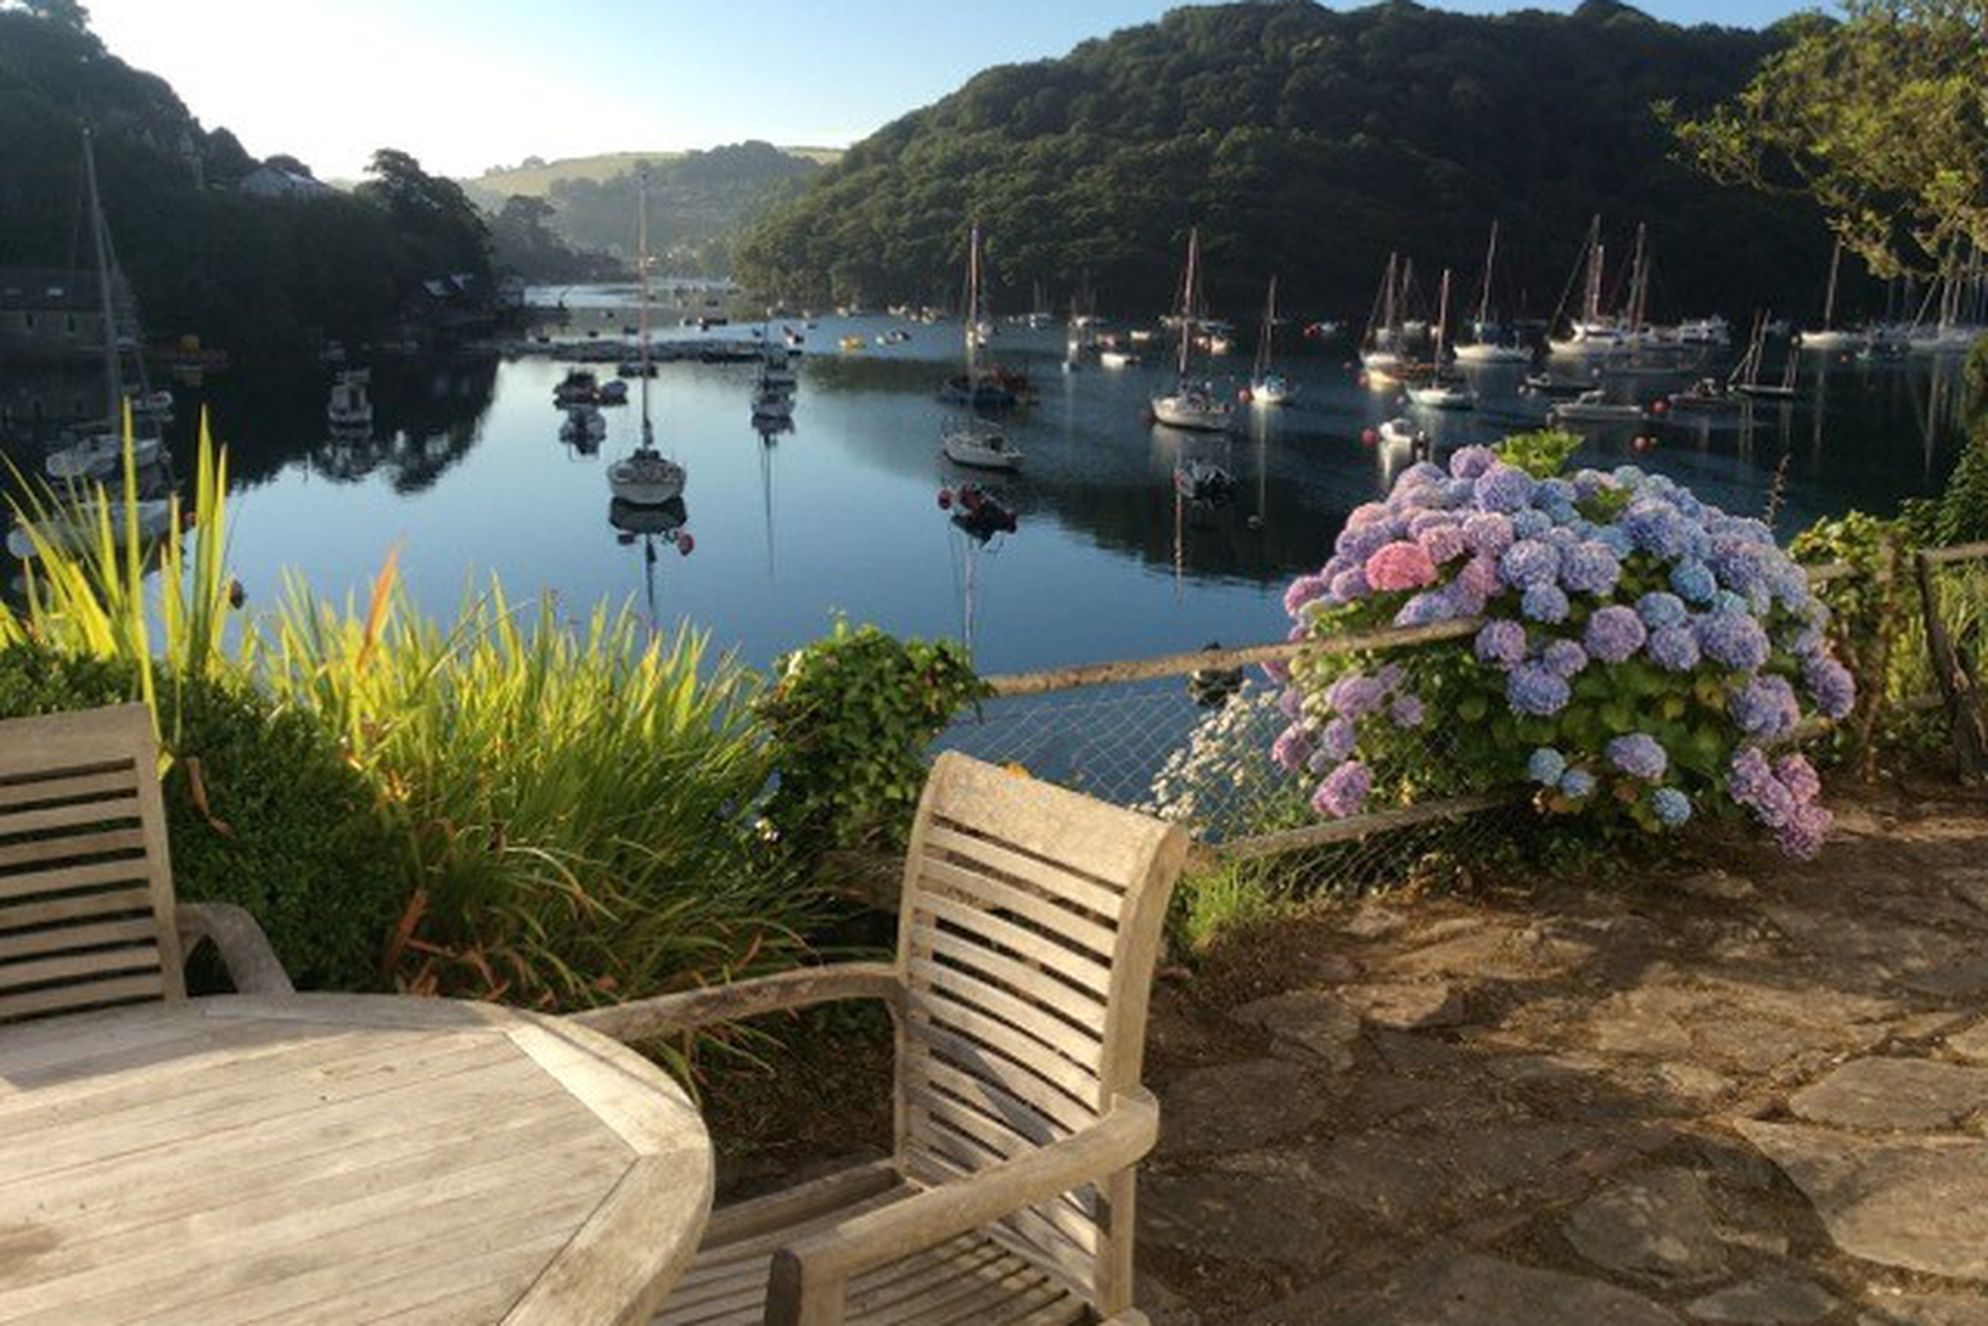 Patio with seating area overlooking the water at the Old Coastguards Cottage in Devon